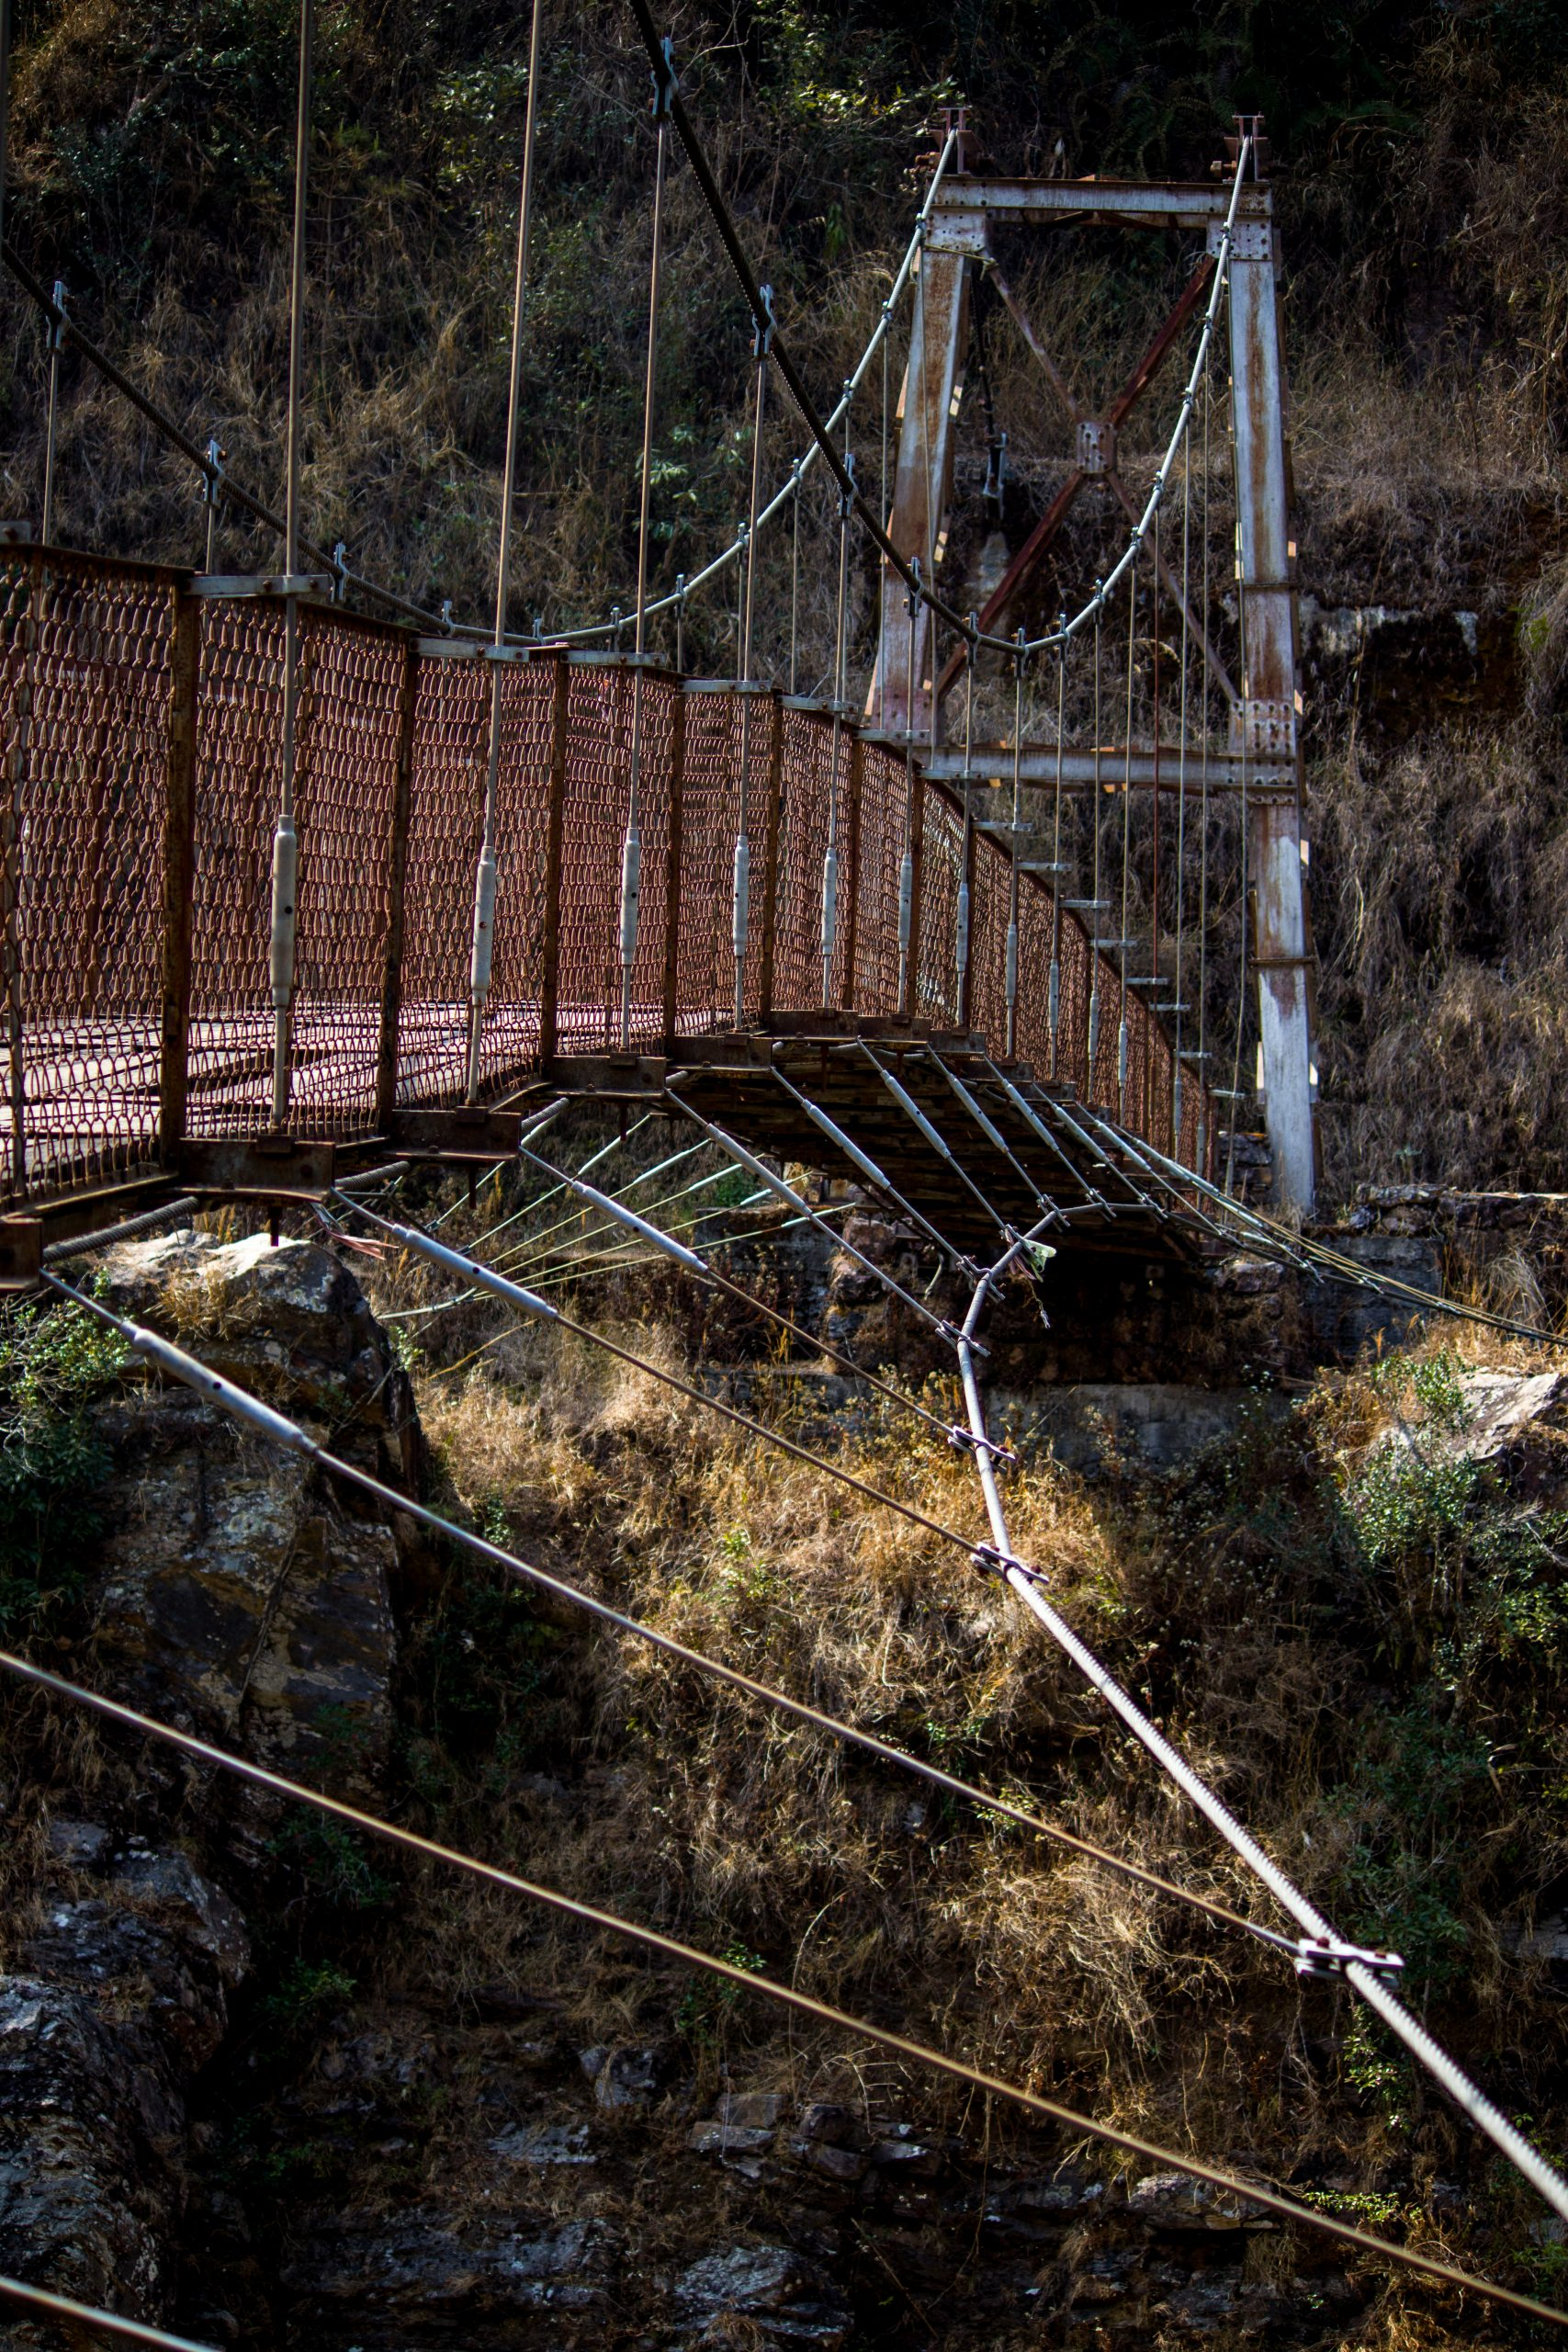 Hanging Bridge with wire